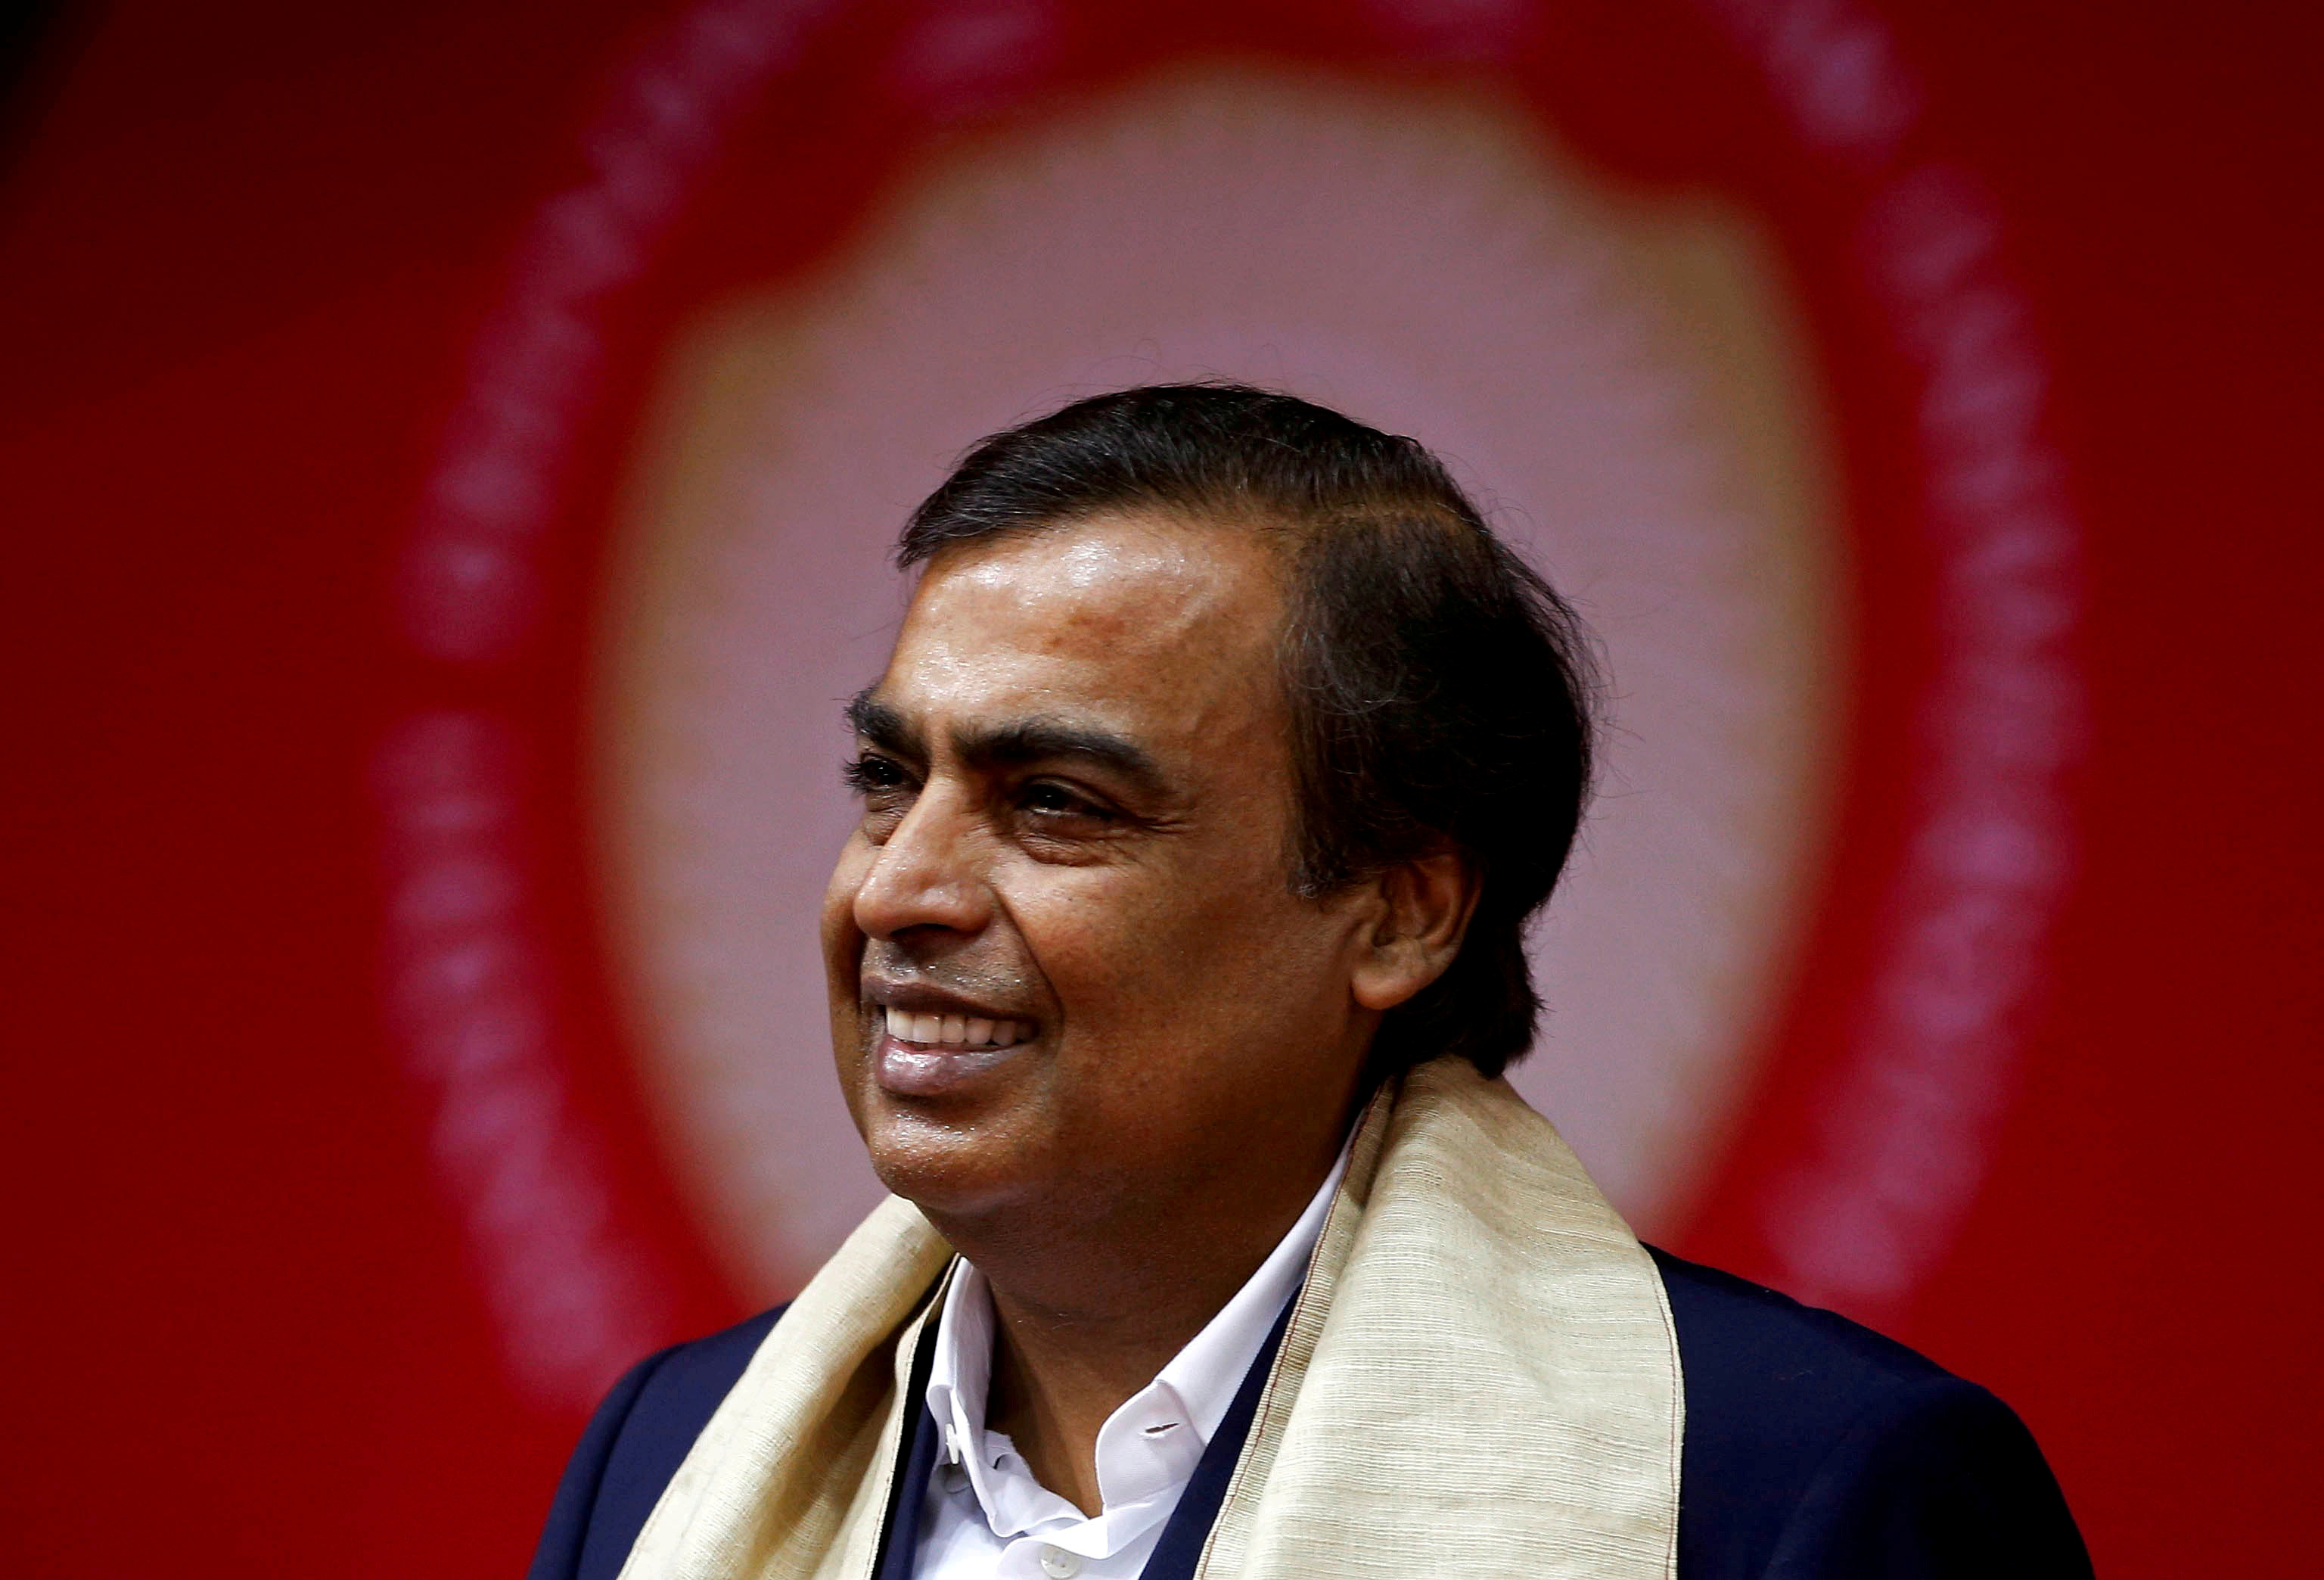 Mukesh Ambani, Chairman and Managing Director of Reliance Industries, attends a convocation at the Pandit Deendayal Petroleum University in Gandhinagar, India, September 23, 2017. REUTERS/Amit Dave/File Photo - RC2IFO9OUCPE